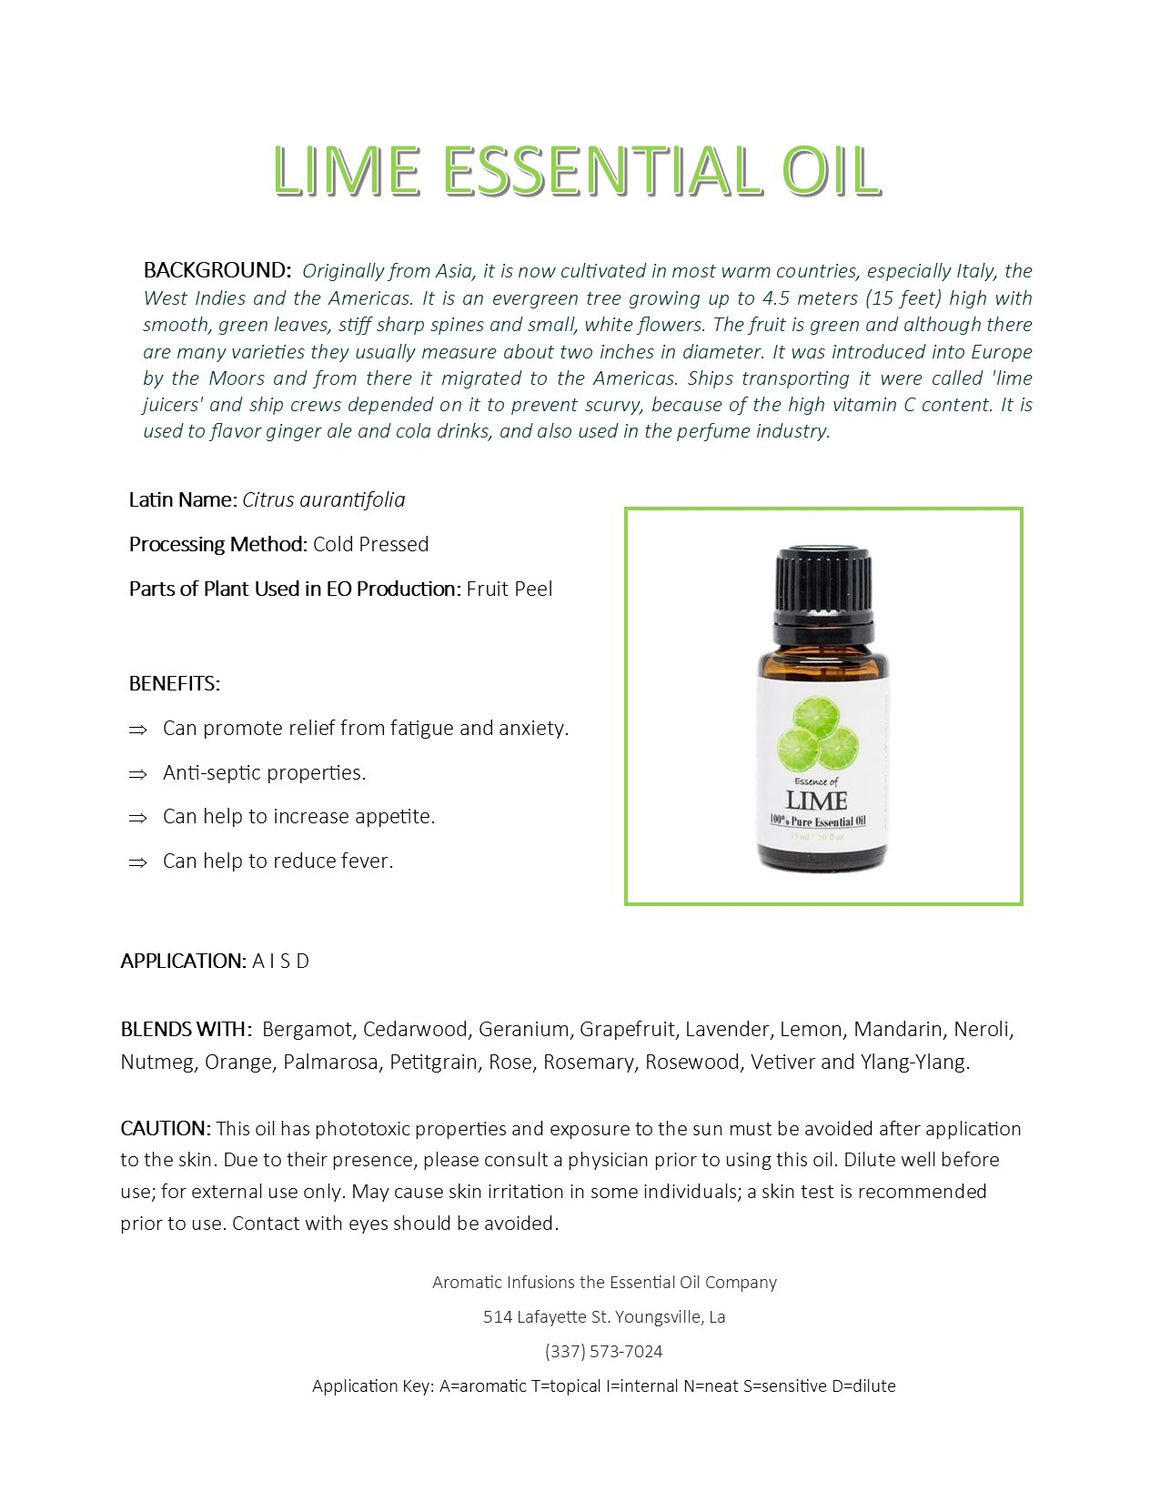 Lime Essential Oil 15ml - Aromatic Infusions